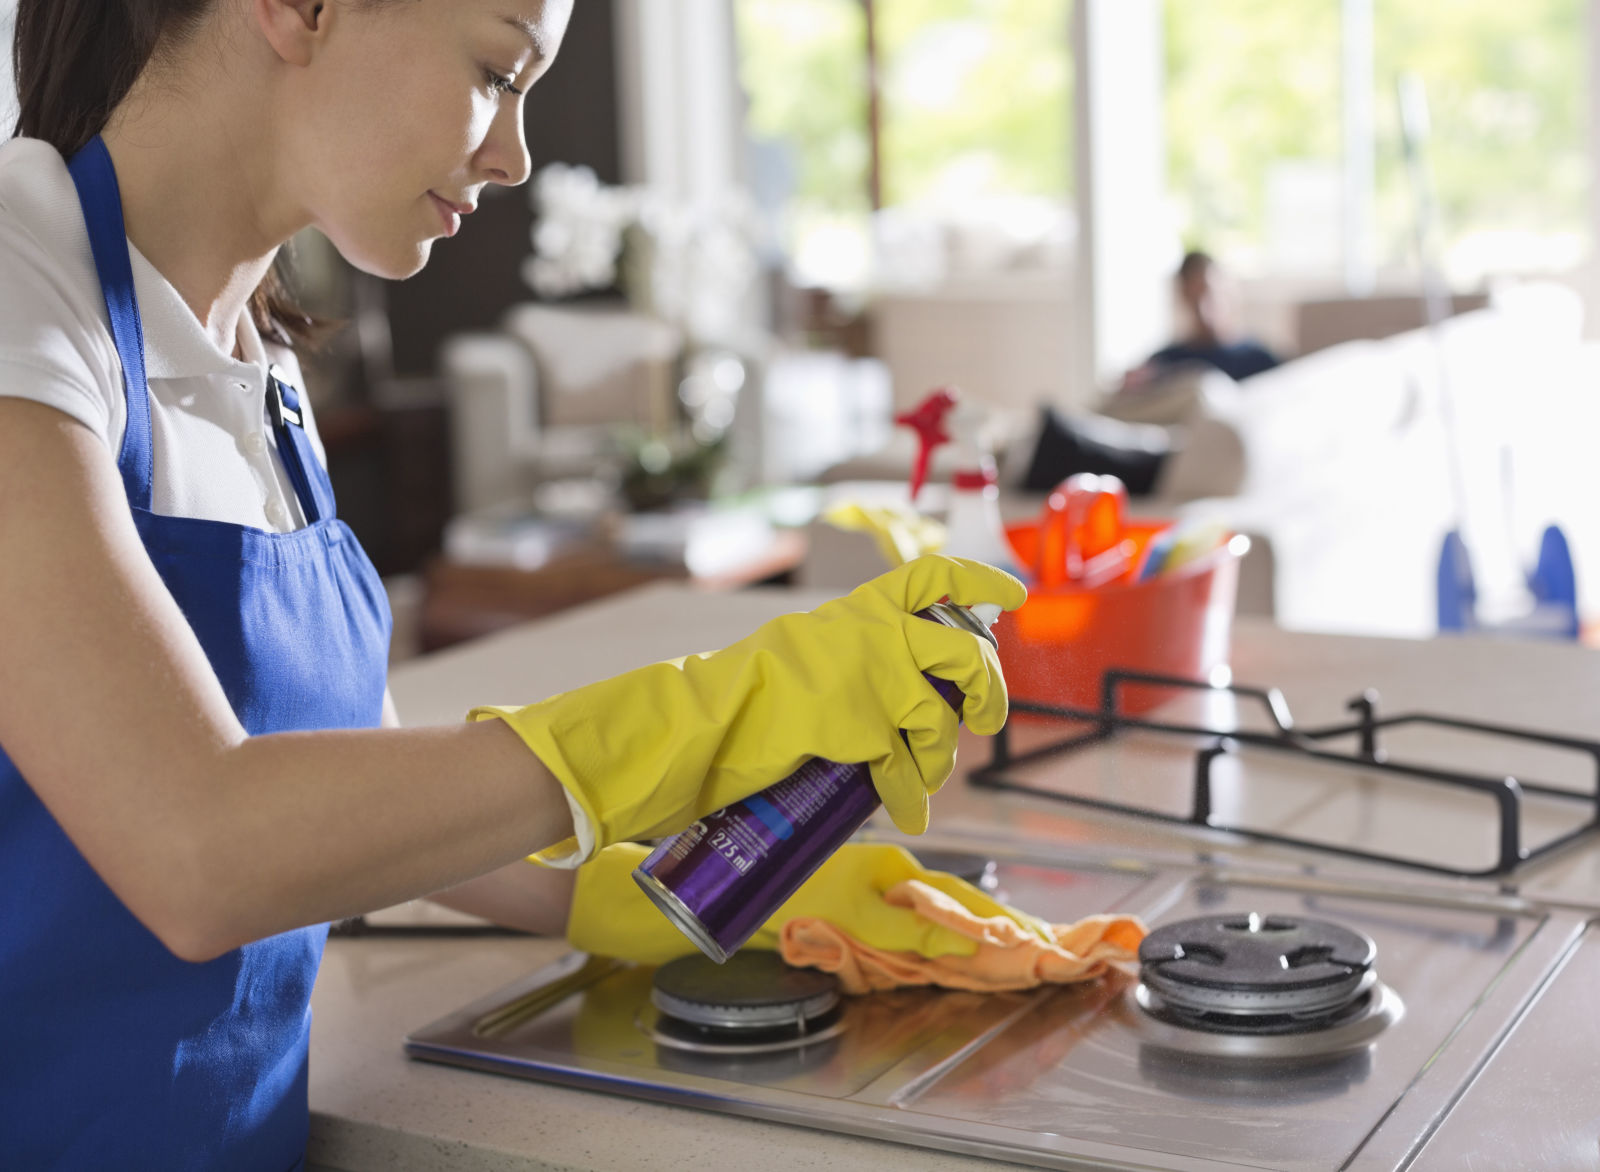 Kitchen Cleaning Tips 30 Spring Cleaning Tips  Quick & Easy House Cleaning Ideas